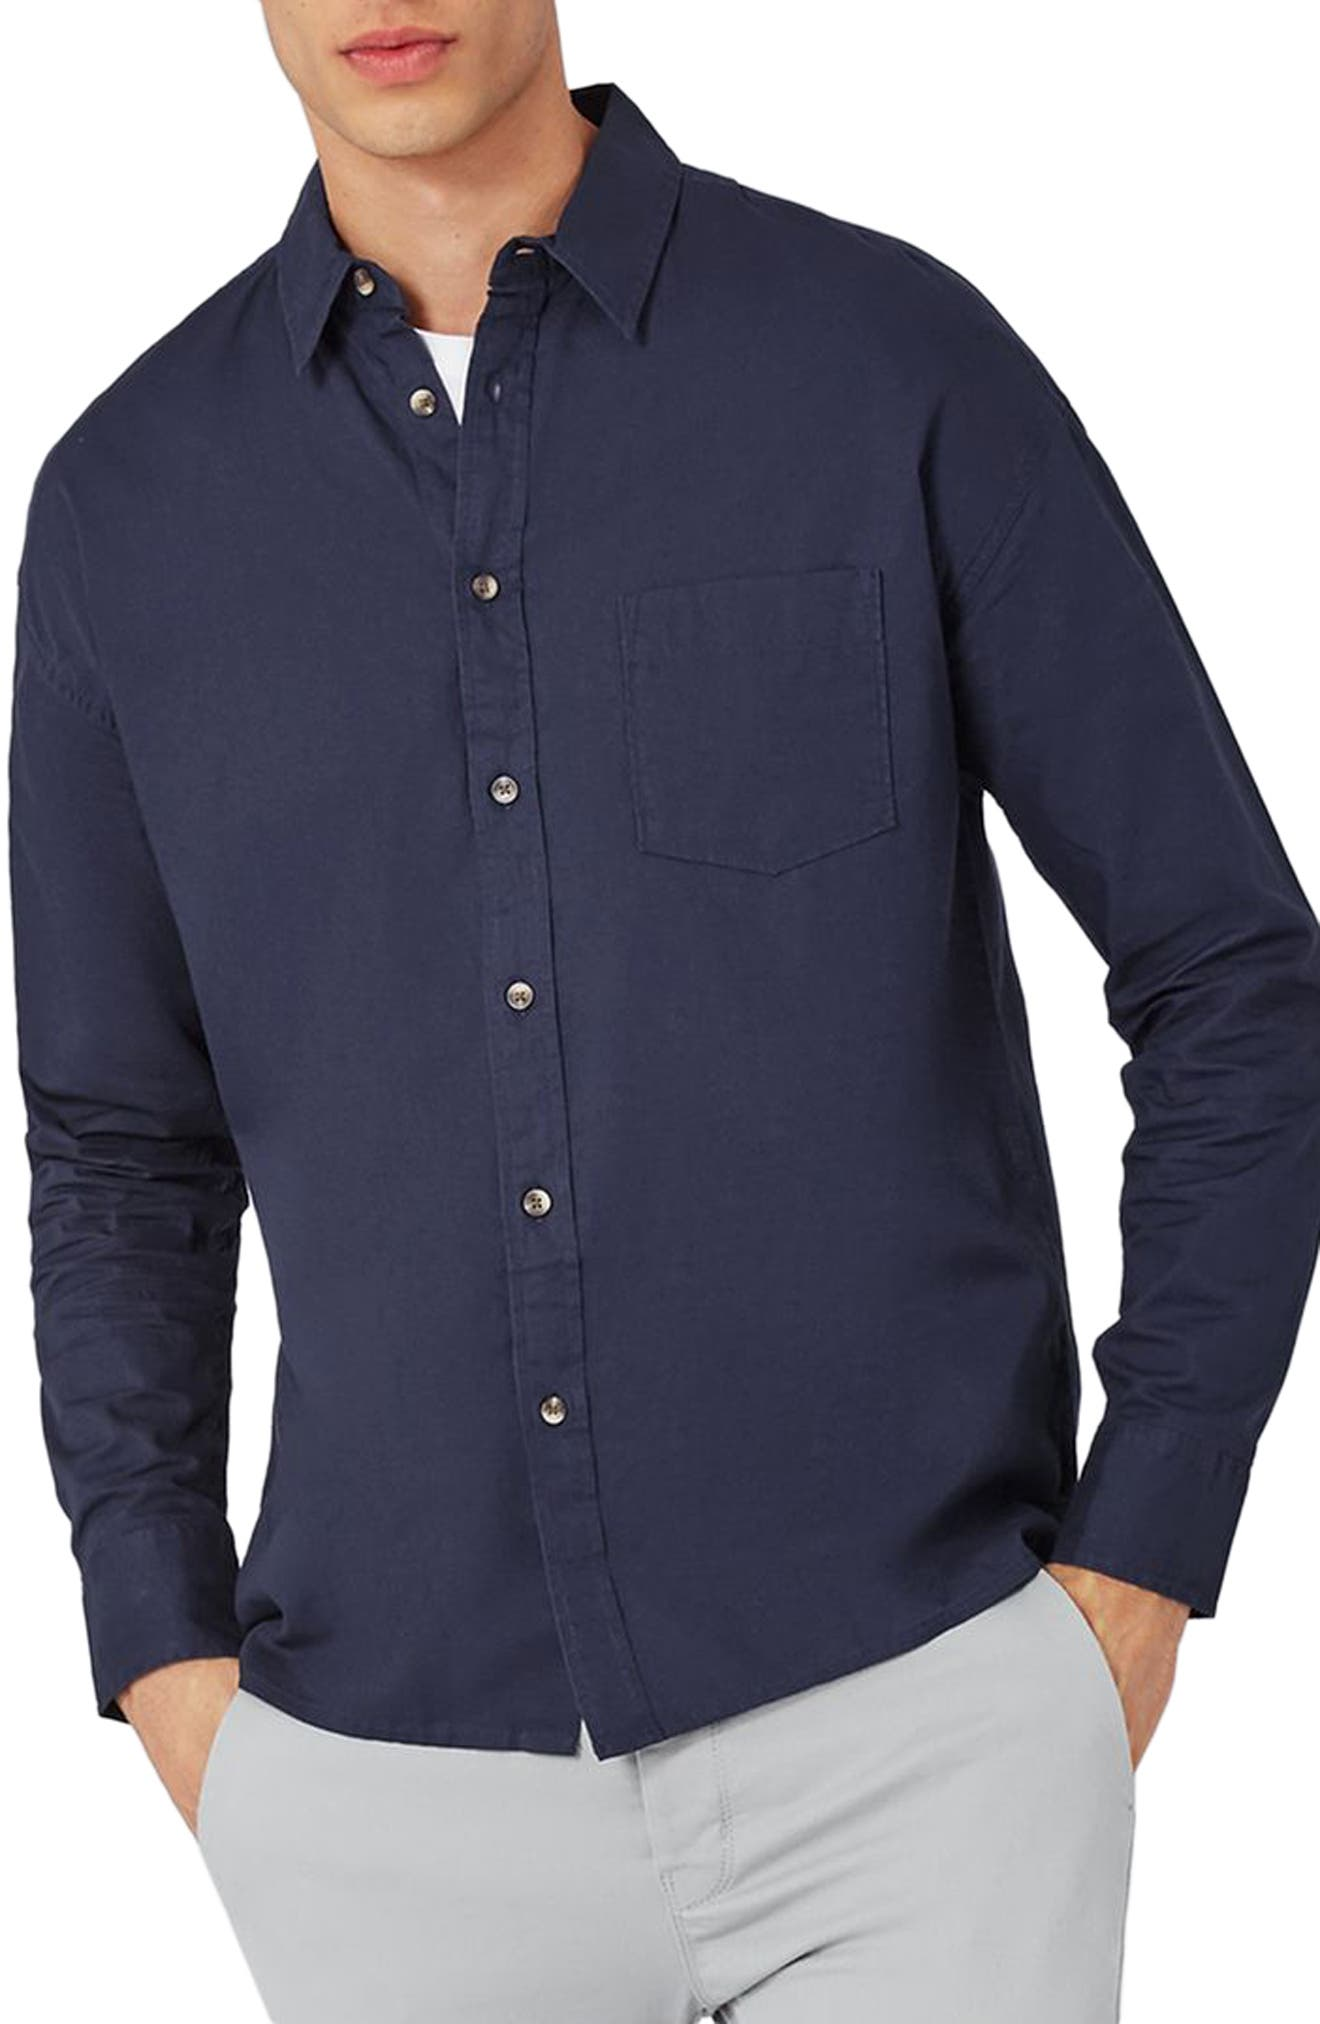 Topman Slim Fit Summer Oxford Shirt